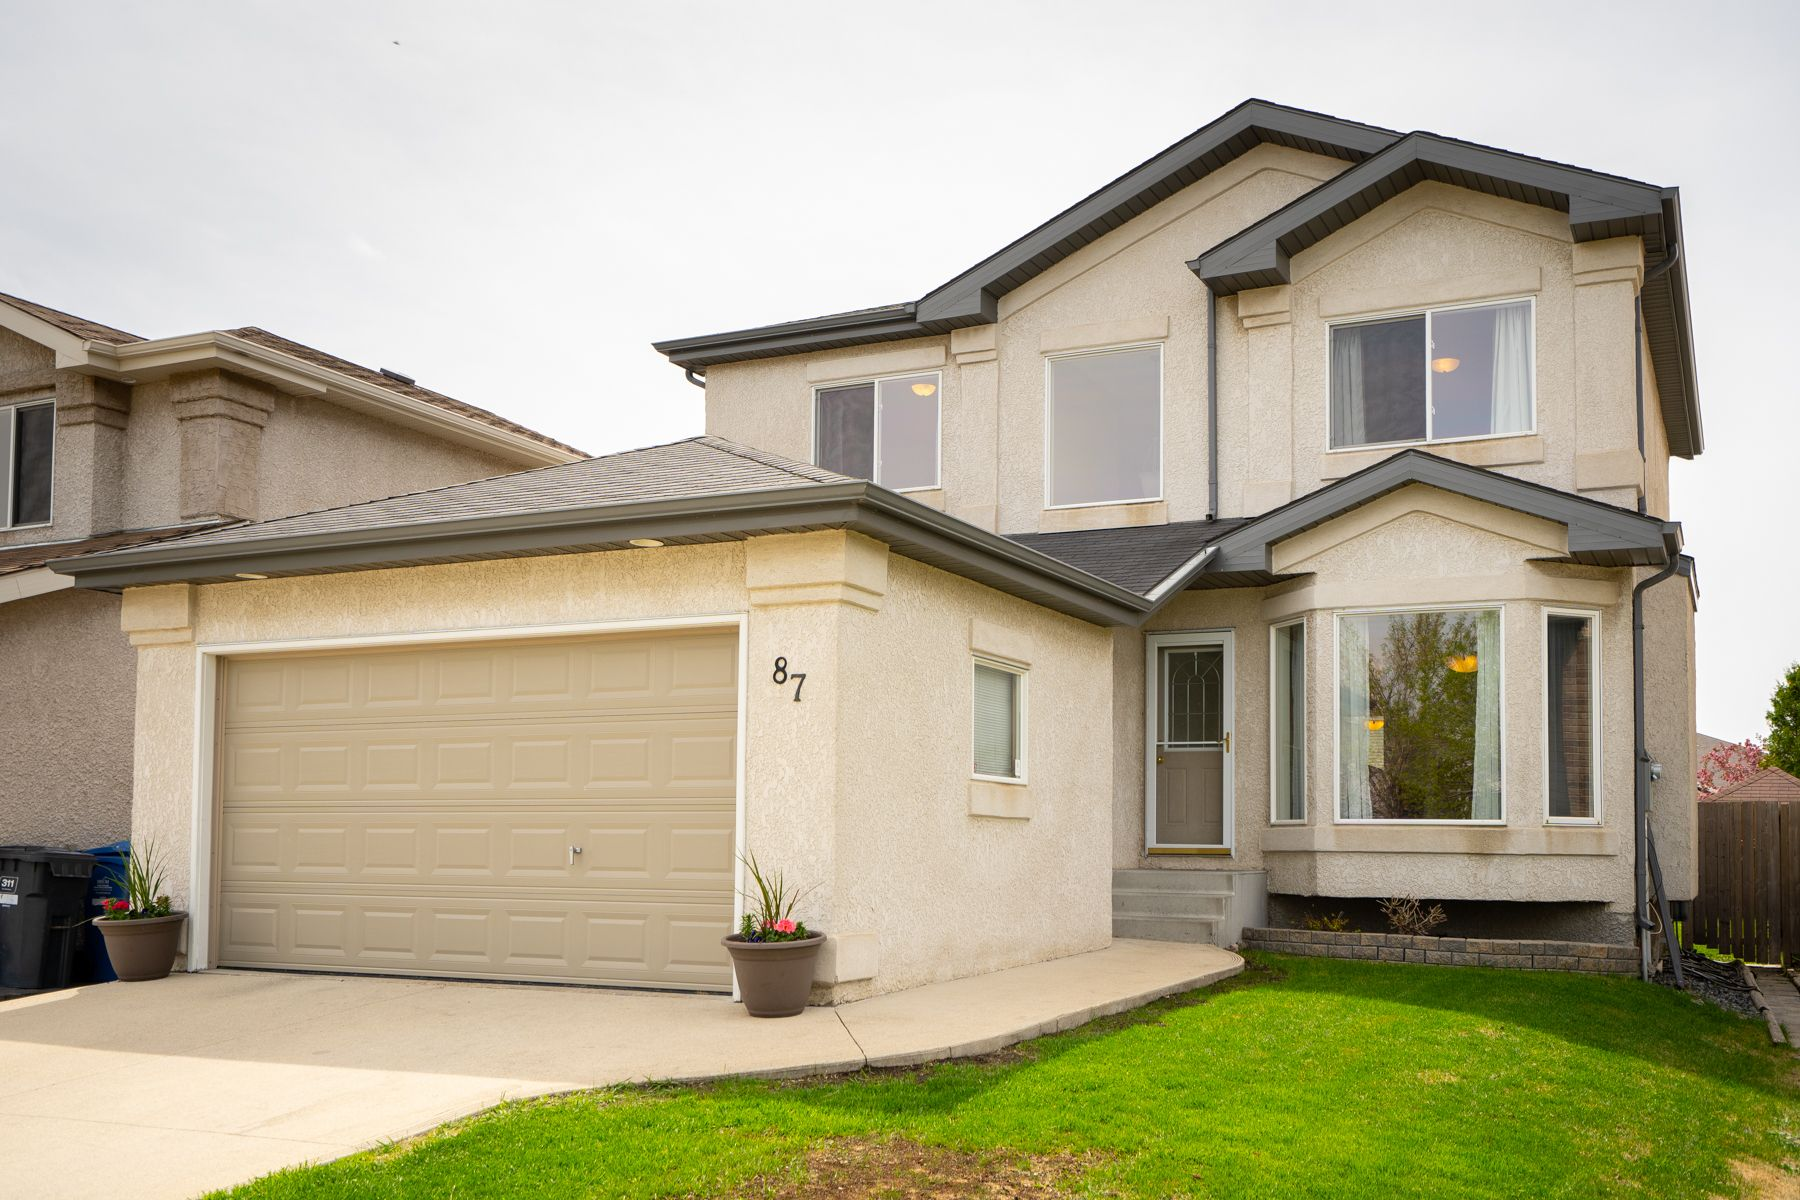 Main Photo: 87 William Gibson Bay in Winnipeg: Canterbury Park House for sale (3M)  : MLS®# 202011374